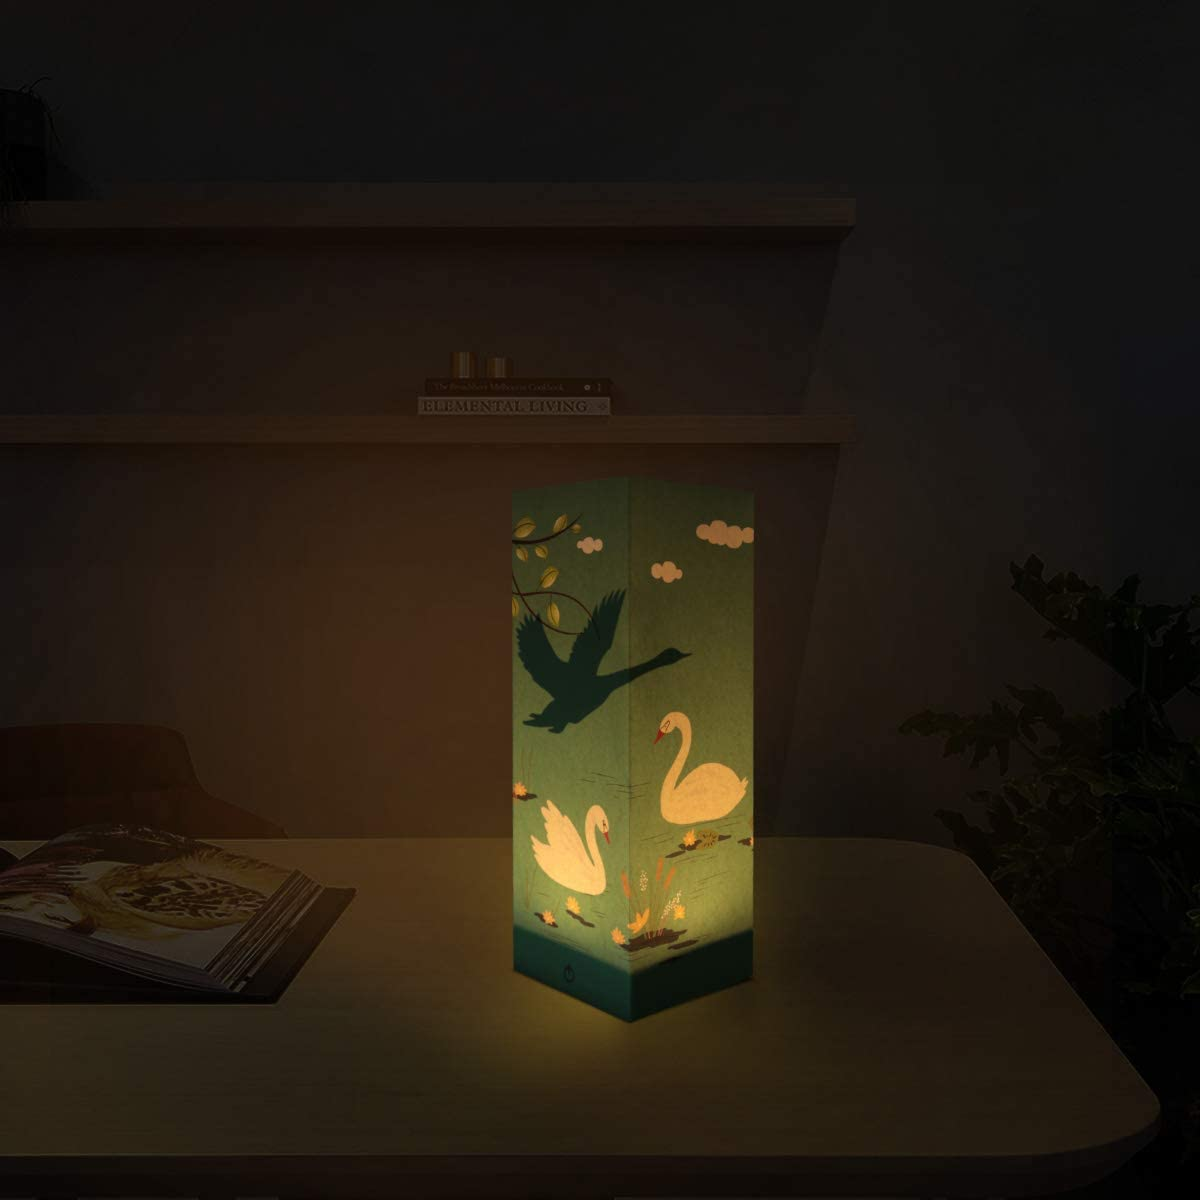 Deer Paper Lanterns Decorative Creative Novelty Paper Lanterns Collapsible Safety Material USB Low Power Energy Save Lamp Home Room Christmas Decor Kids Adult Friends Gift